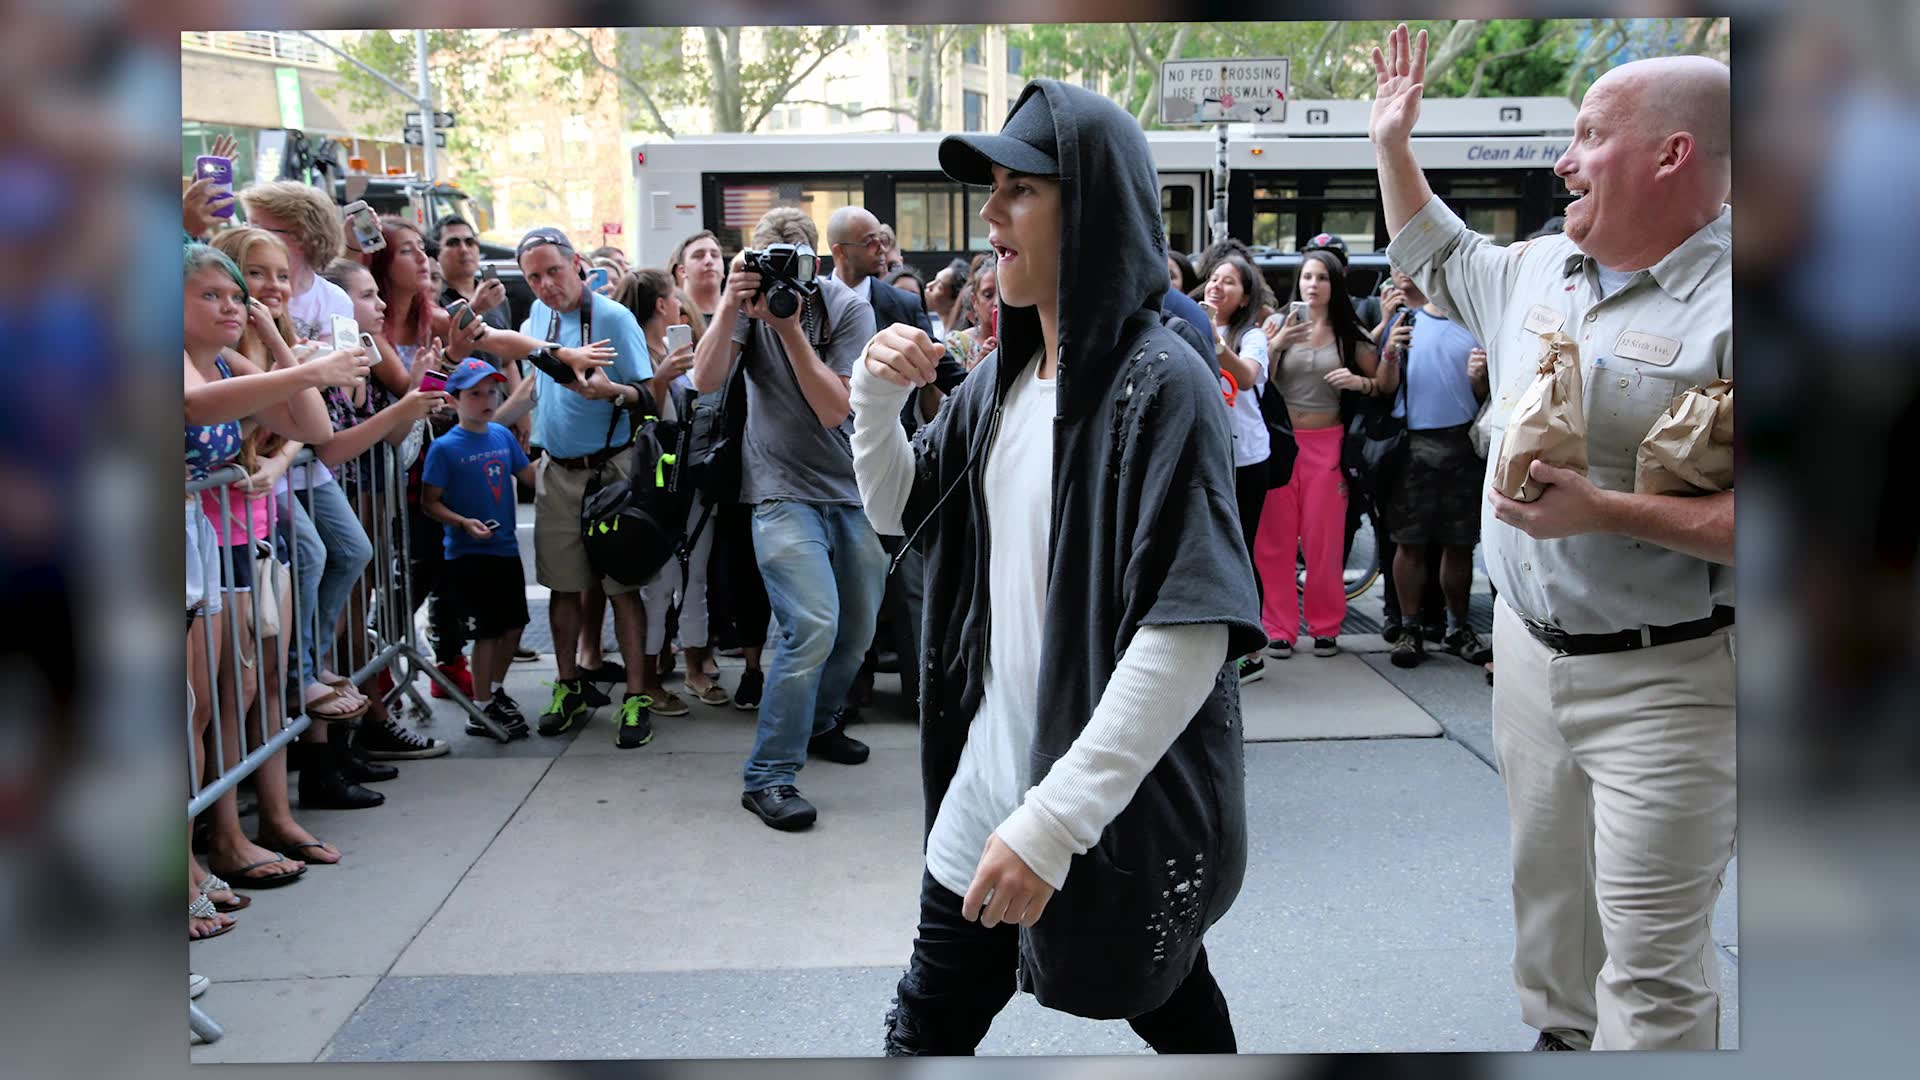 Justin Bieber Mobbed By Fans In New York